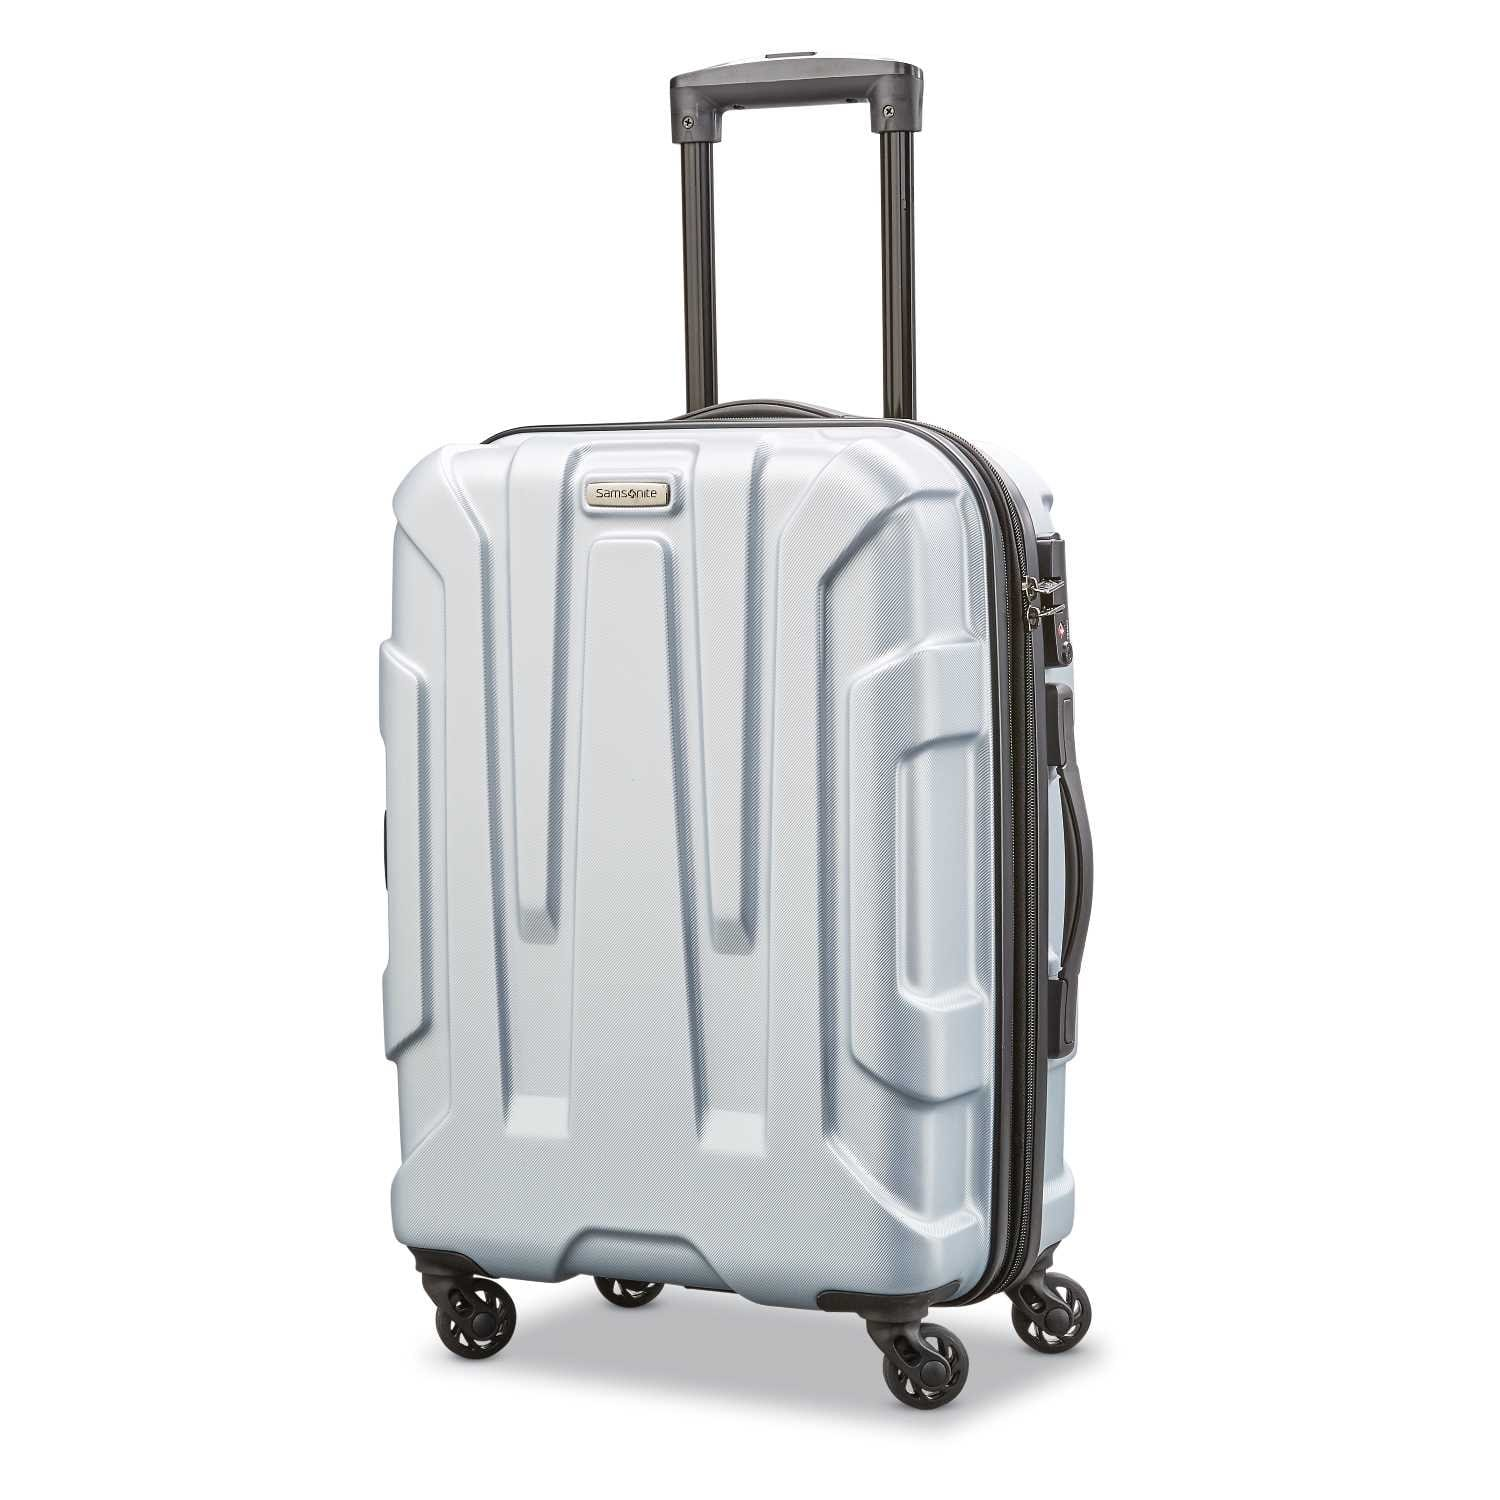 Samsonite Centric Expandable Hardside Carry On Luggage with Spinner Wheels, 20 Inch, Silver $63.99